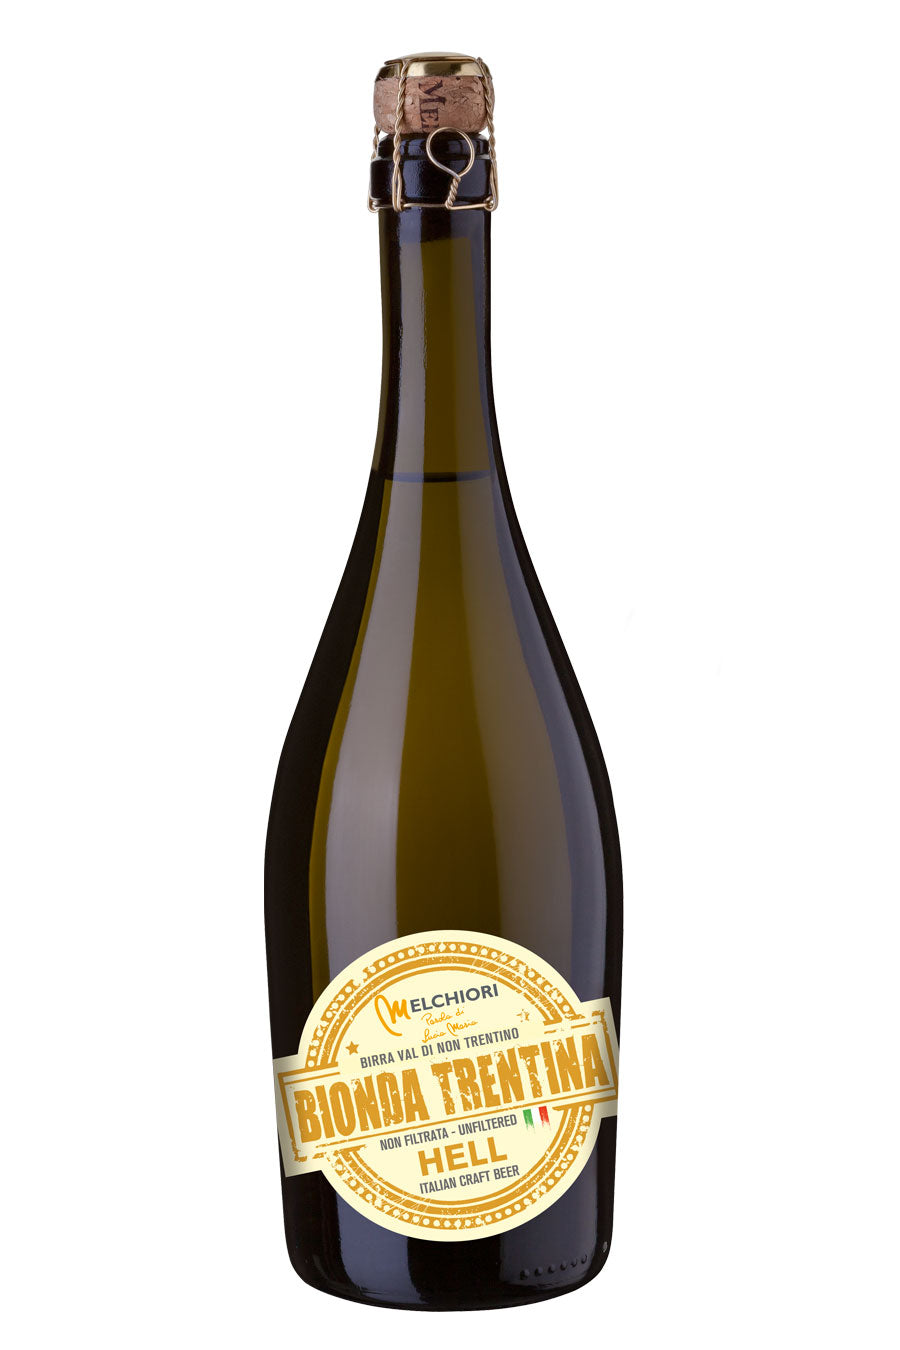 Melchiori Craft Hells Blonde Beer from Trentino 75cl - Agrumia